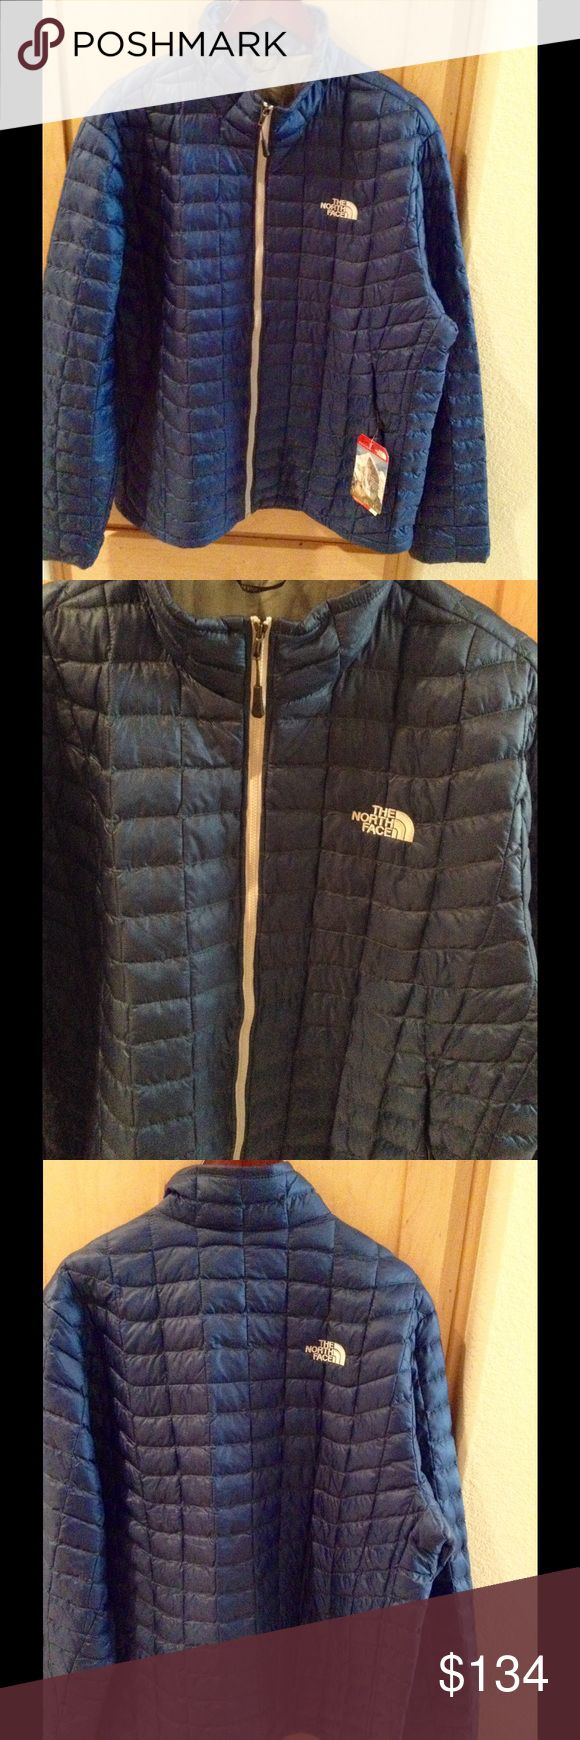 NEW The North Face Men's Thermoball Jacket-XXL Brand new Men's Thermoball Jacket in XXL in Navy color.  No trade.  Price is firm. The North Face Jackets & Coats